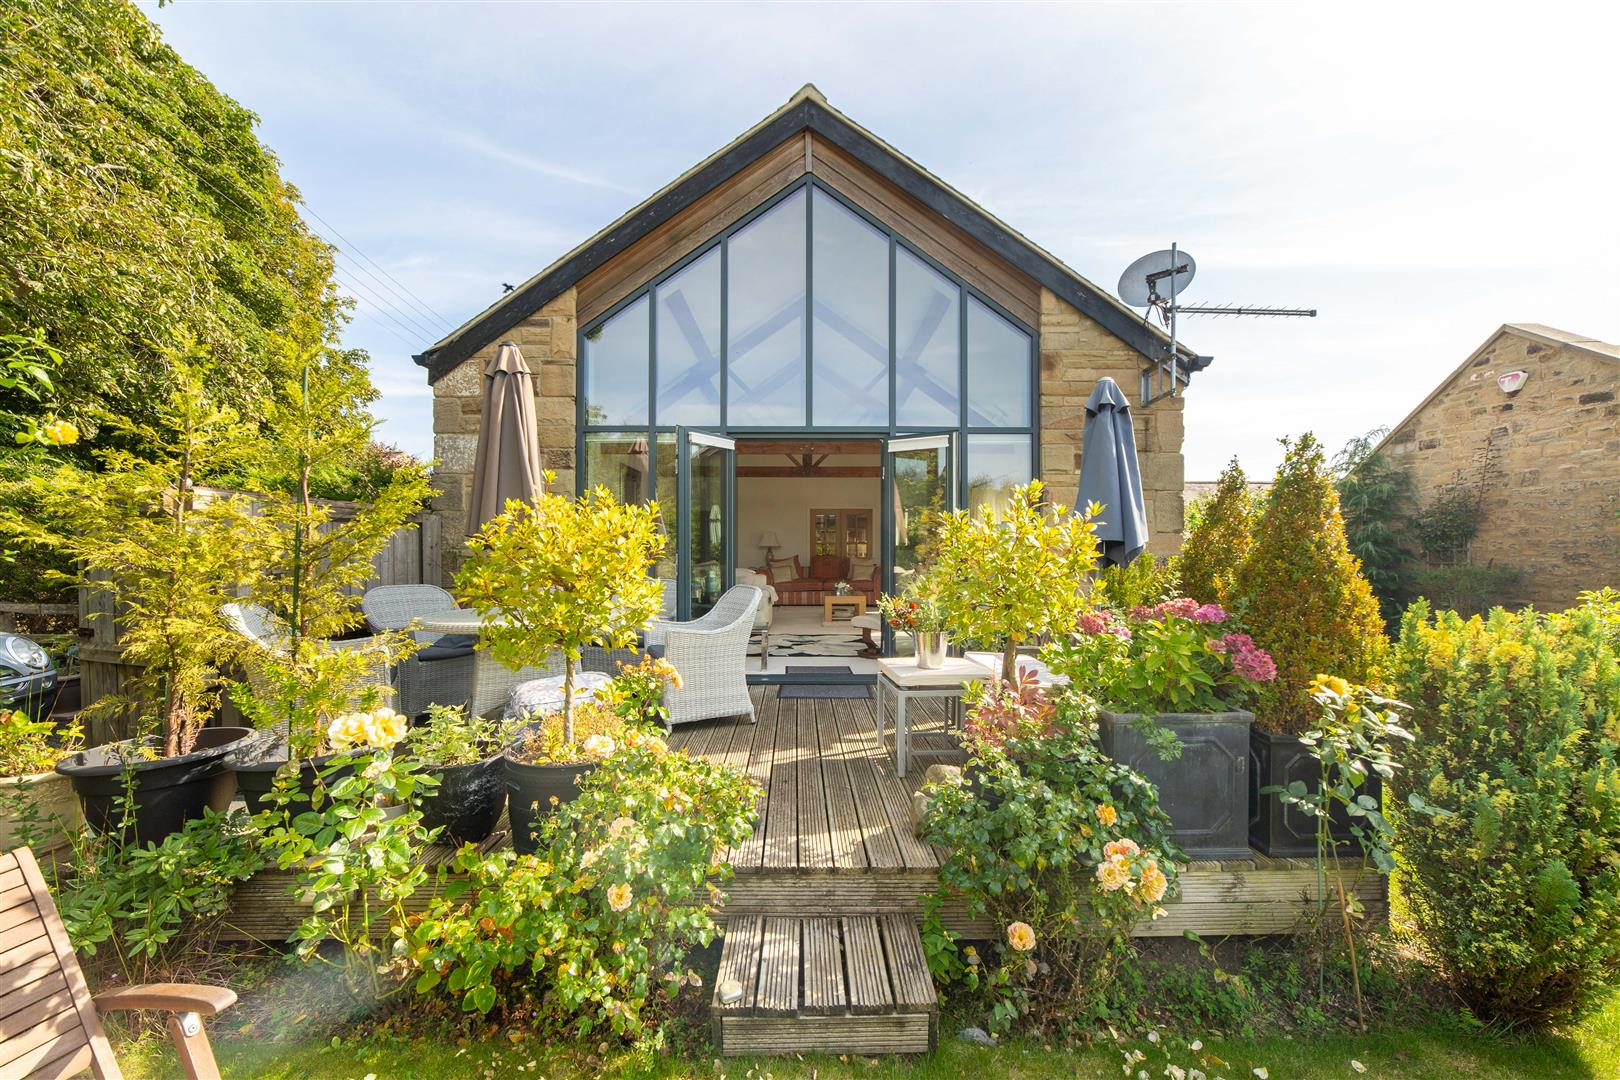 4 bed barn conversion for sale in Newcastle Upon Tyne, NE13 7BR  - Property Image 1